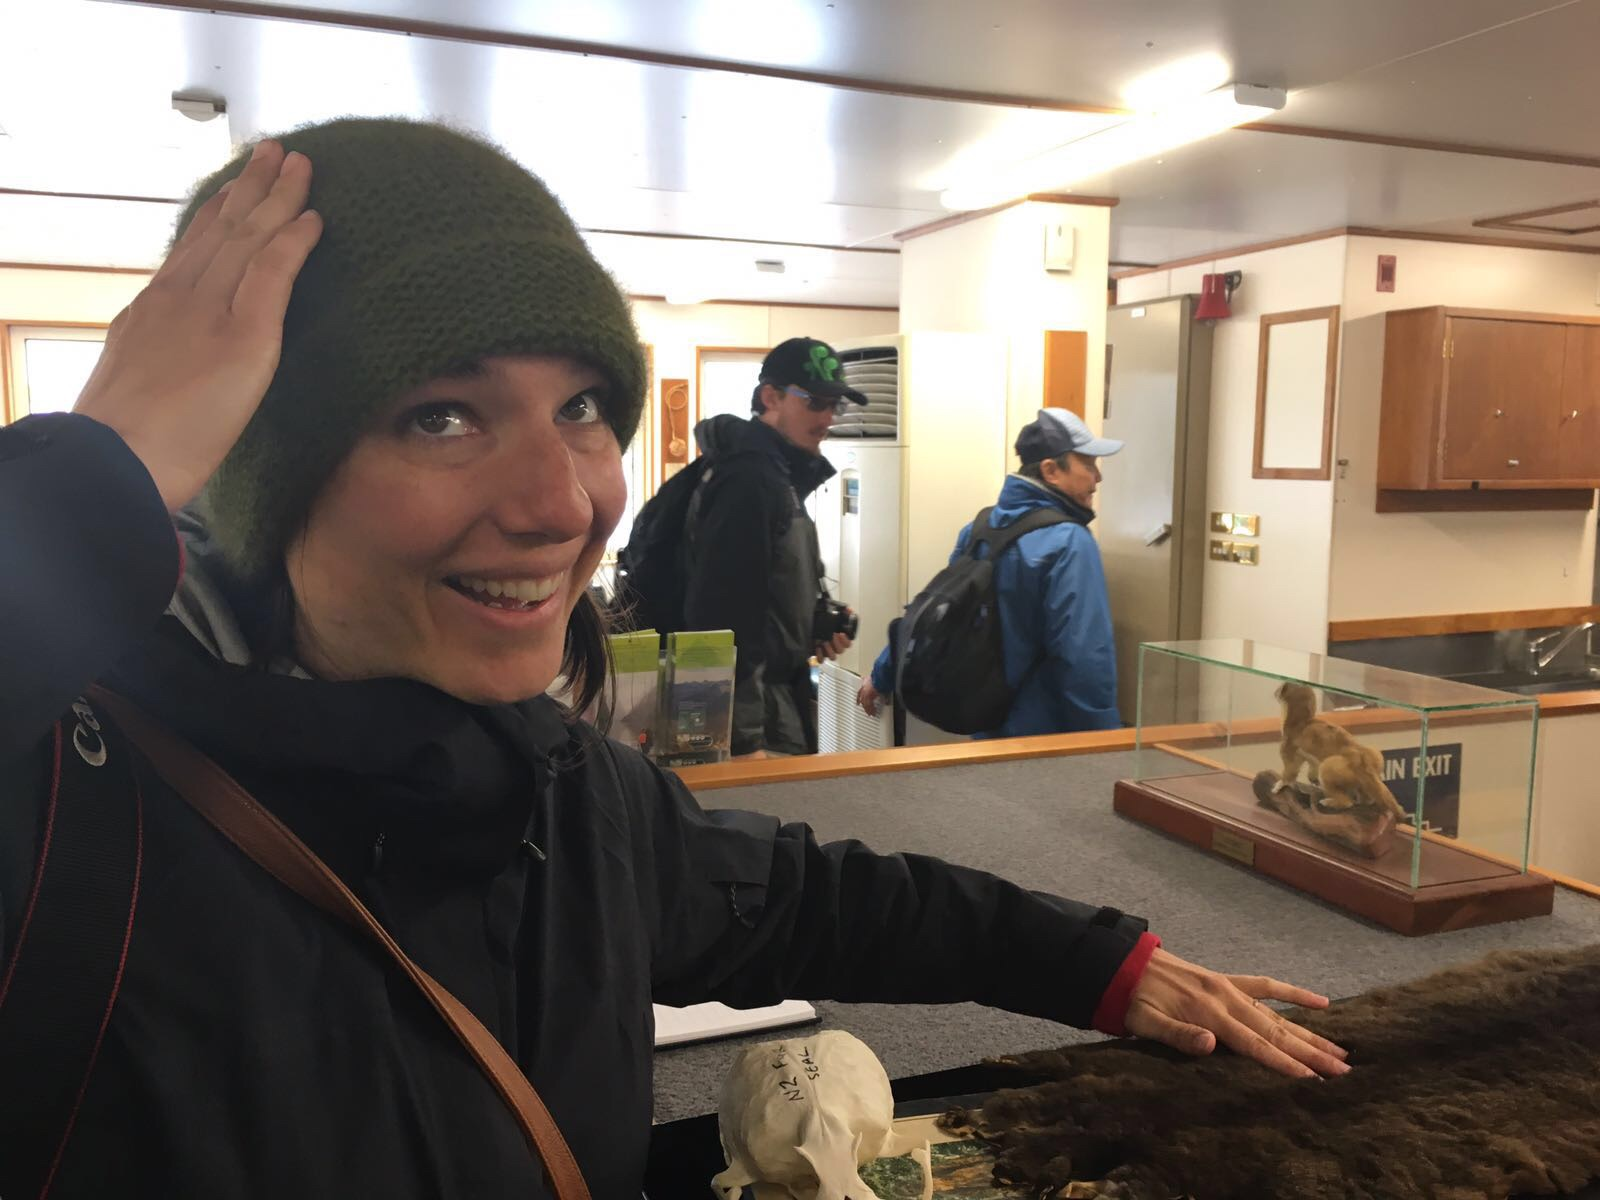 Coincidentally there was a possum skin on our Milford Sound Nature cruise. I had just gotten the possum hat, so I was clearly amused. Adam was super excited about this photo request.